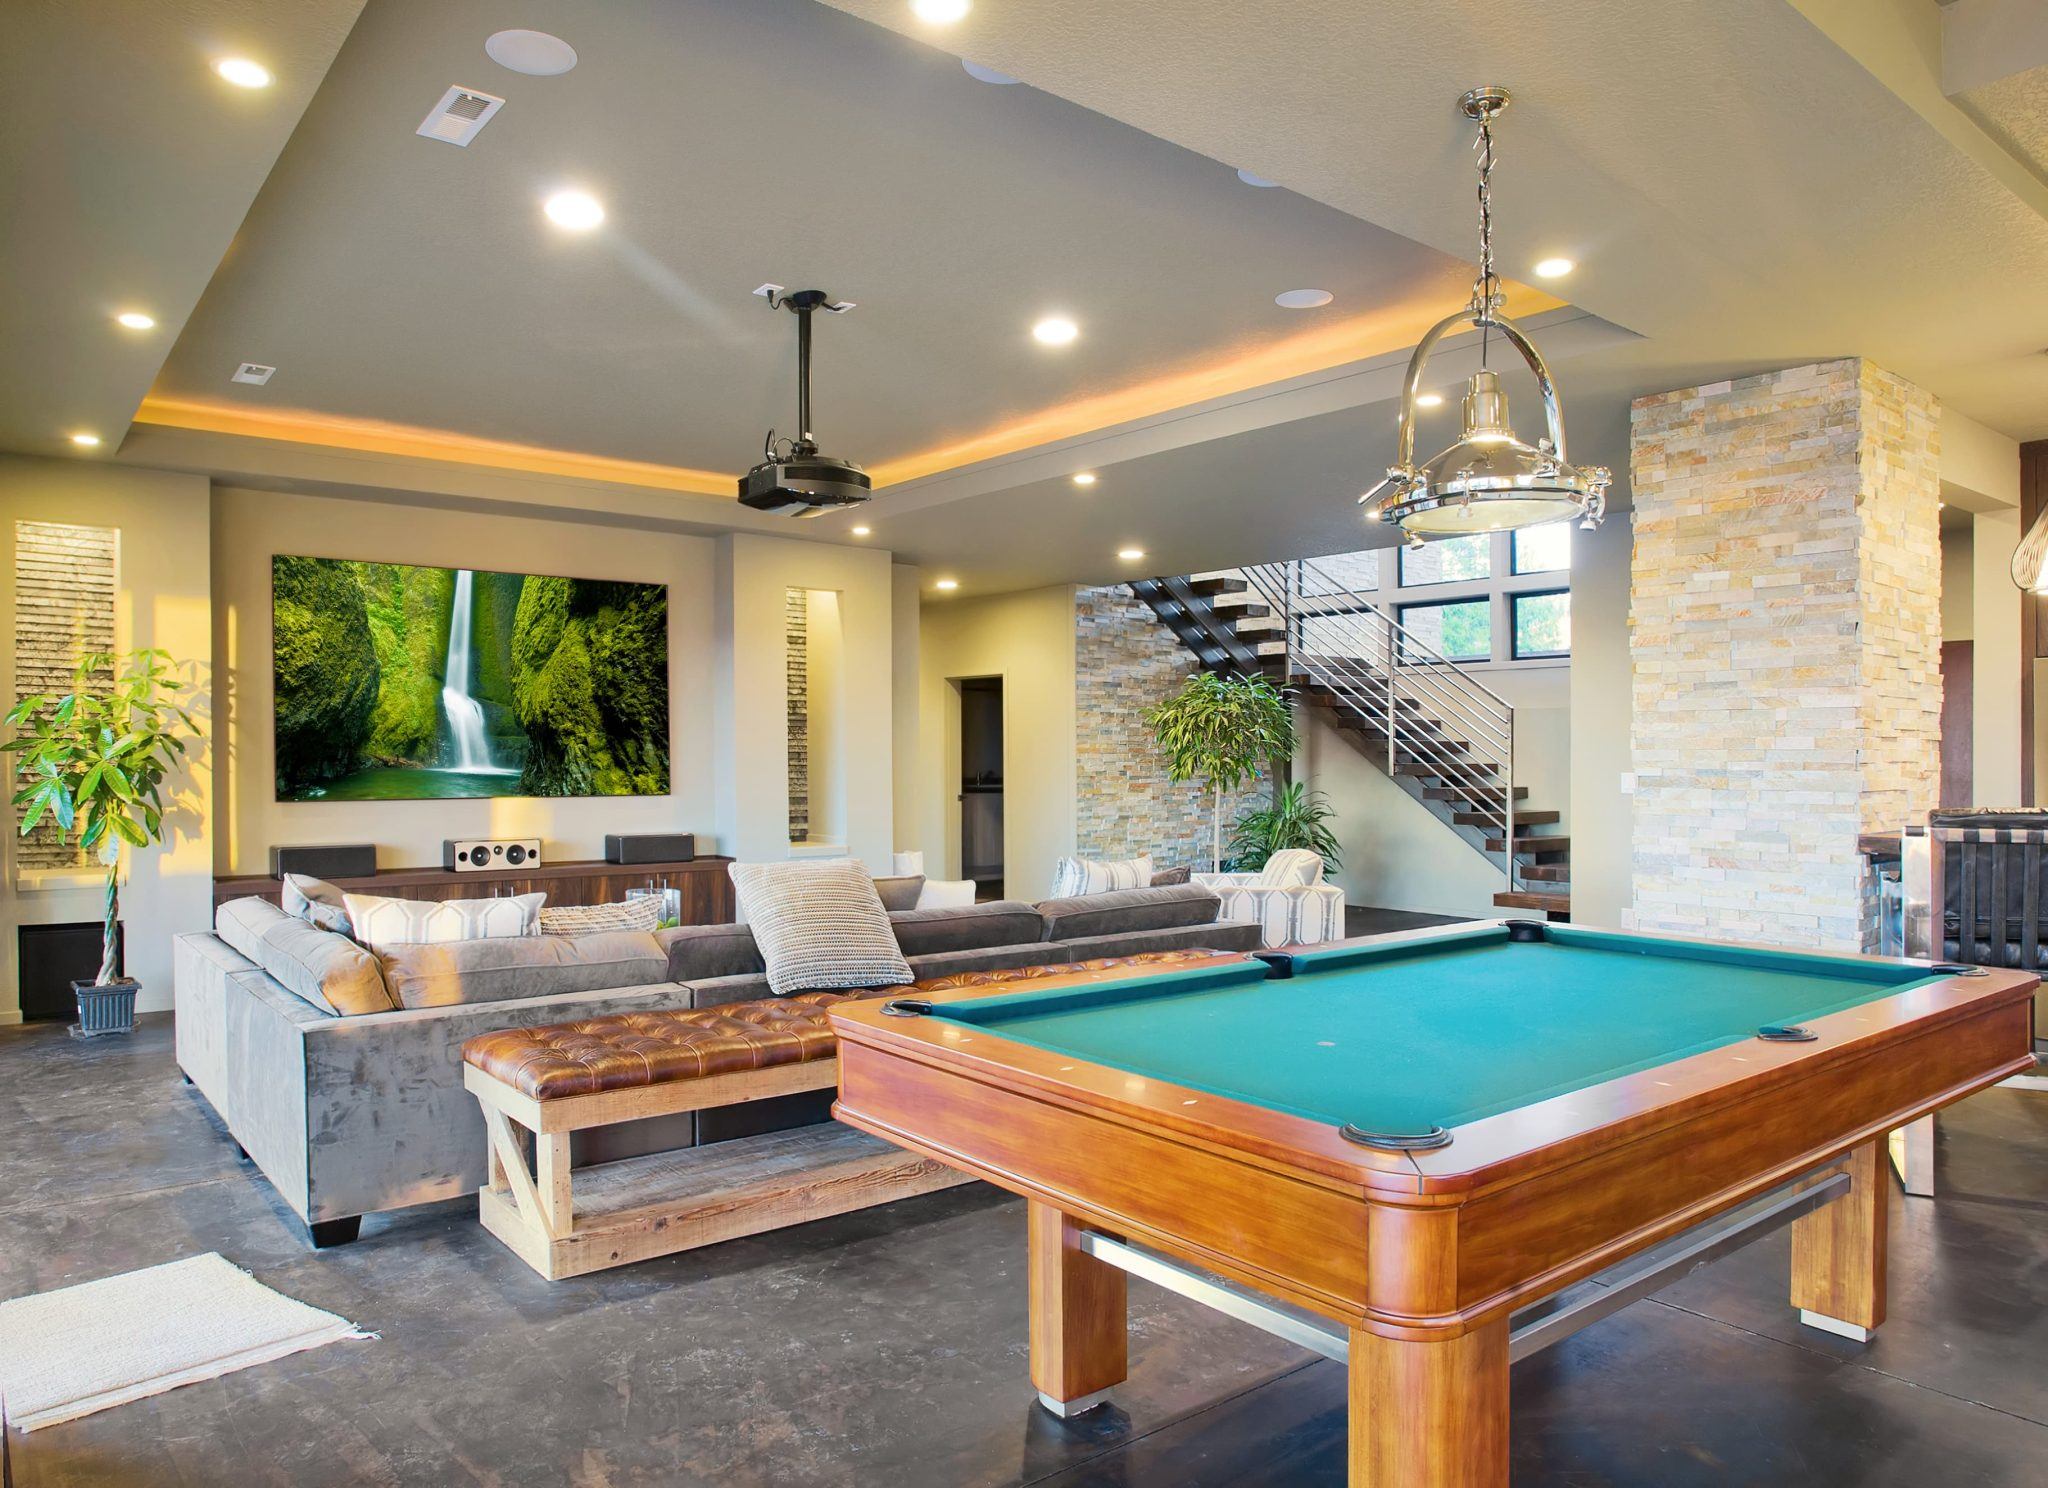 8 Must-Haves for Your Game Room